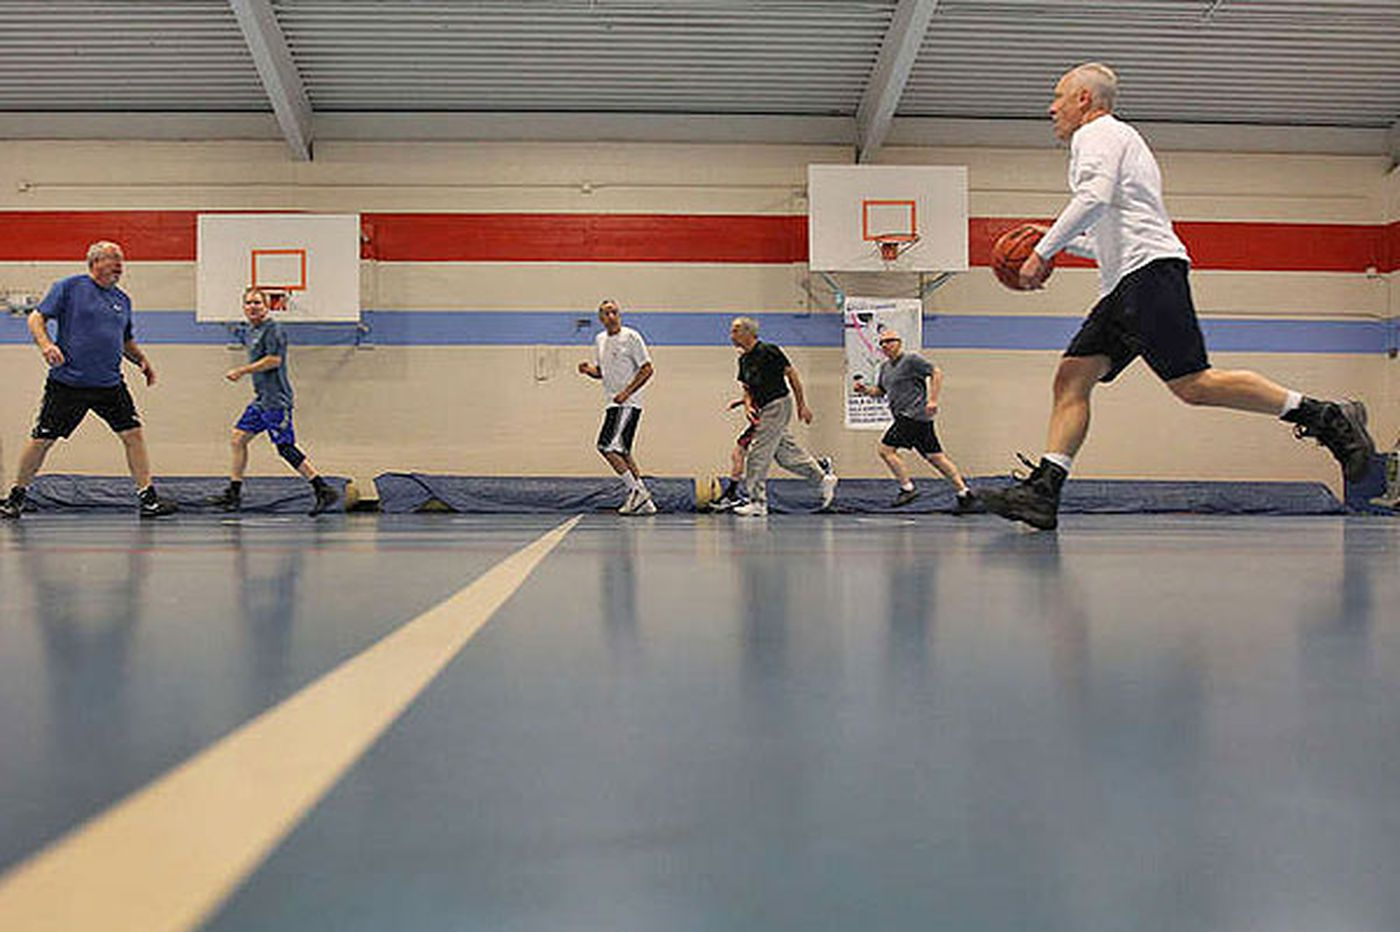 Well Being: Basketball puts a bounce in their steps